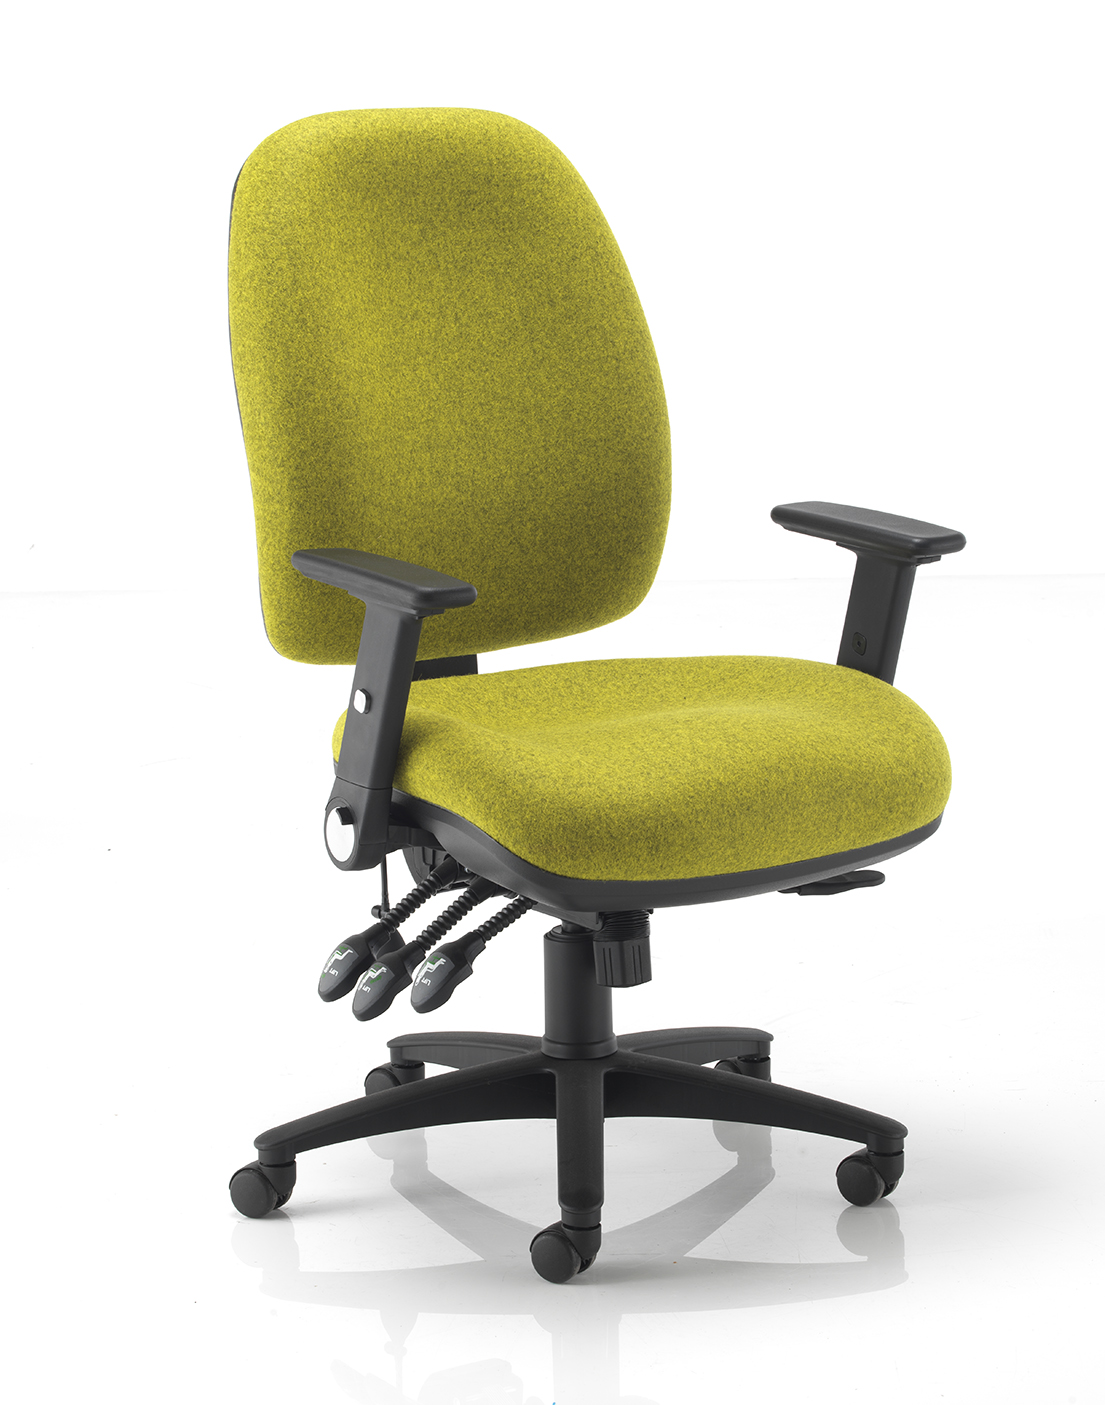 PSI LARGE SEATED CHAIR WITH ARMS